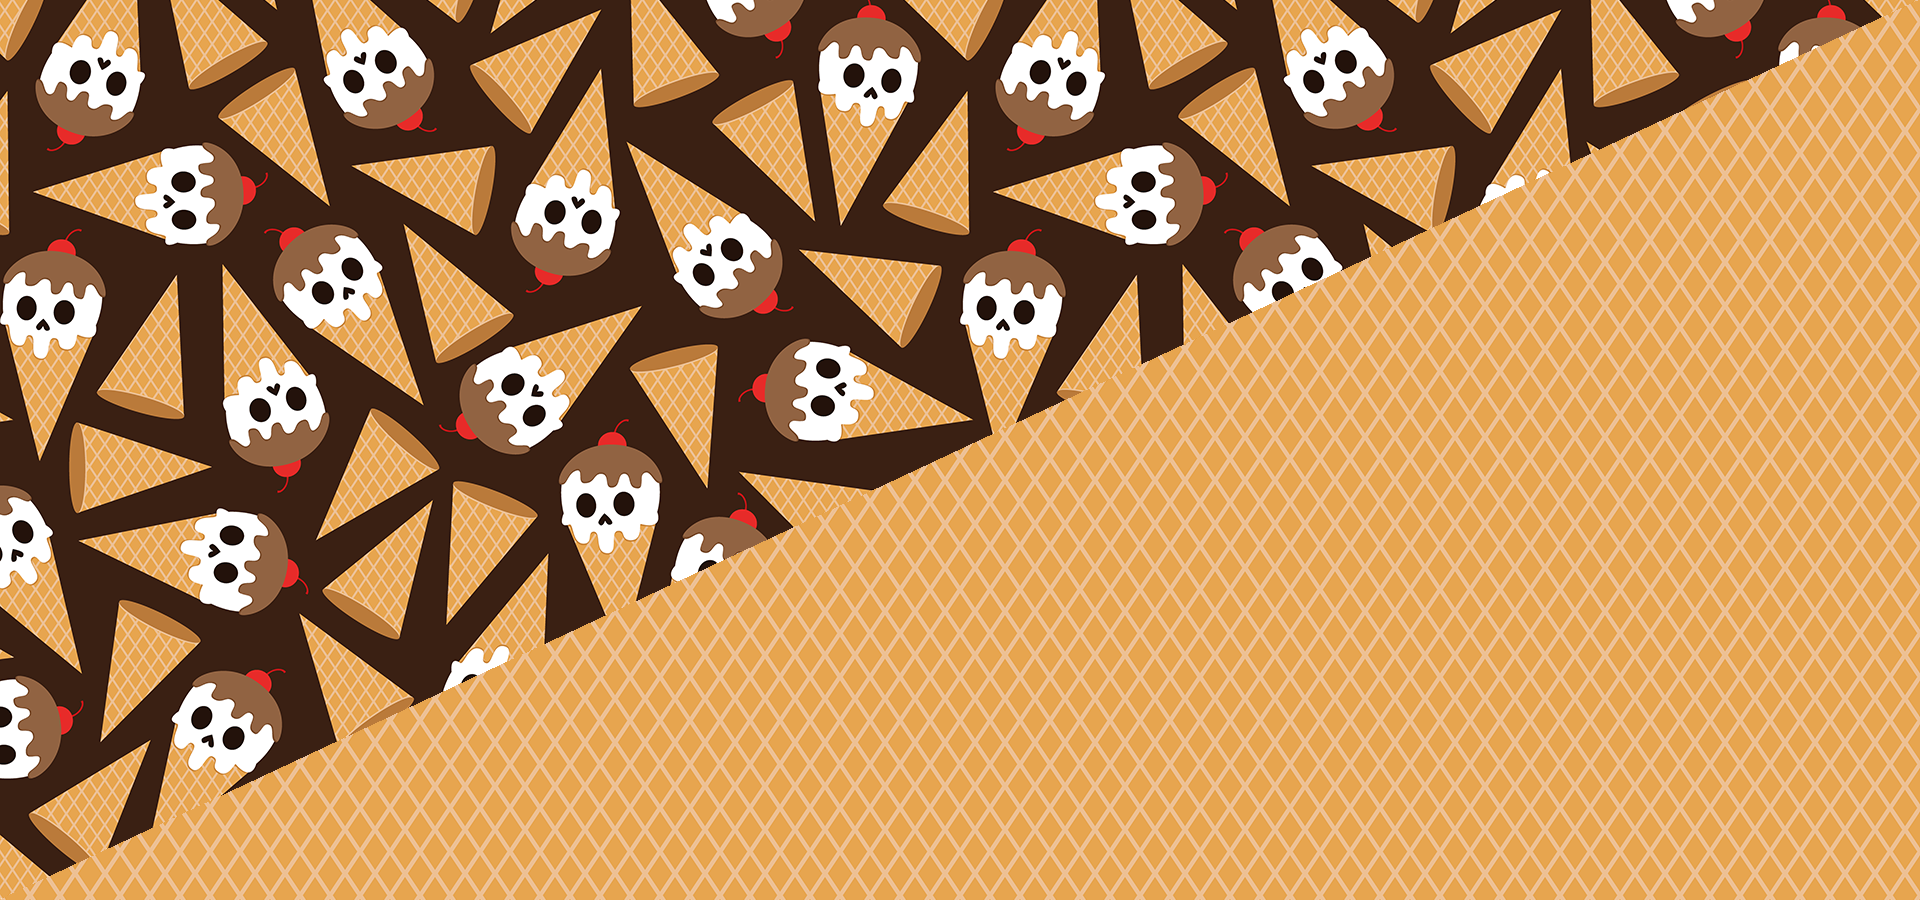 sugary-skulls-pattern-collection-by-petits-pixels